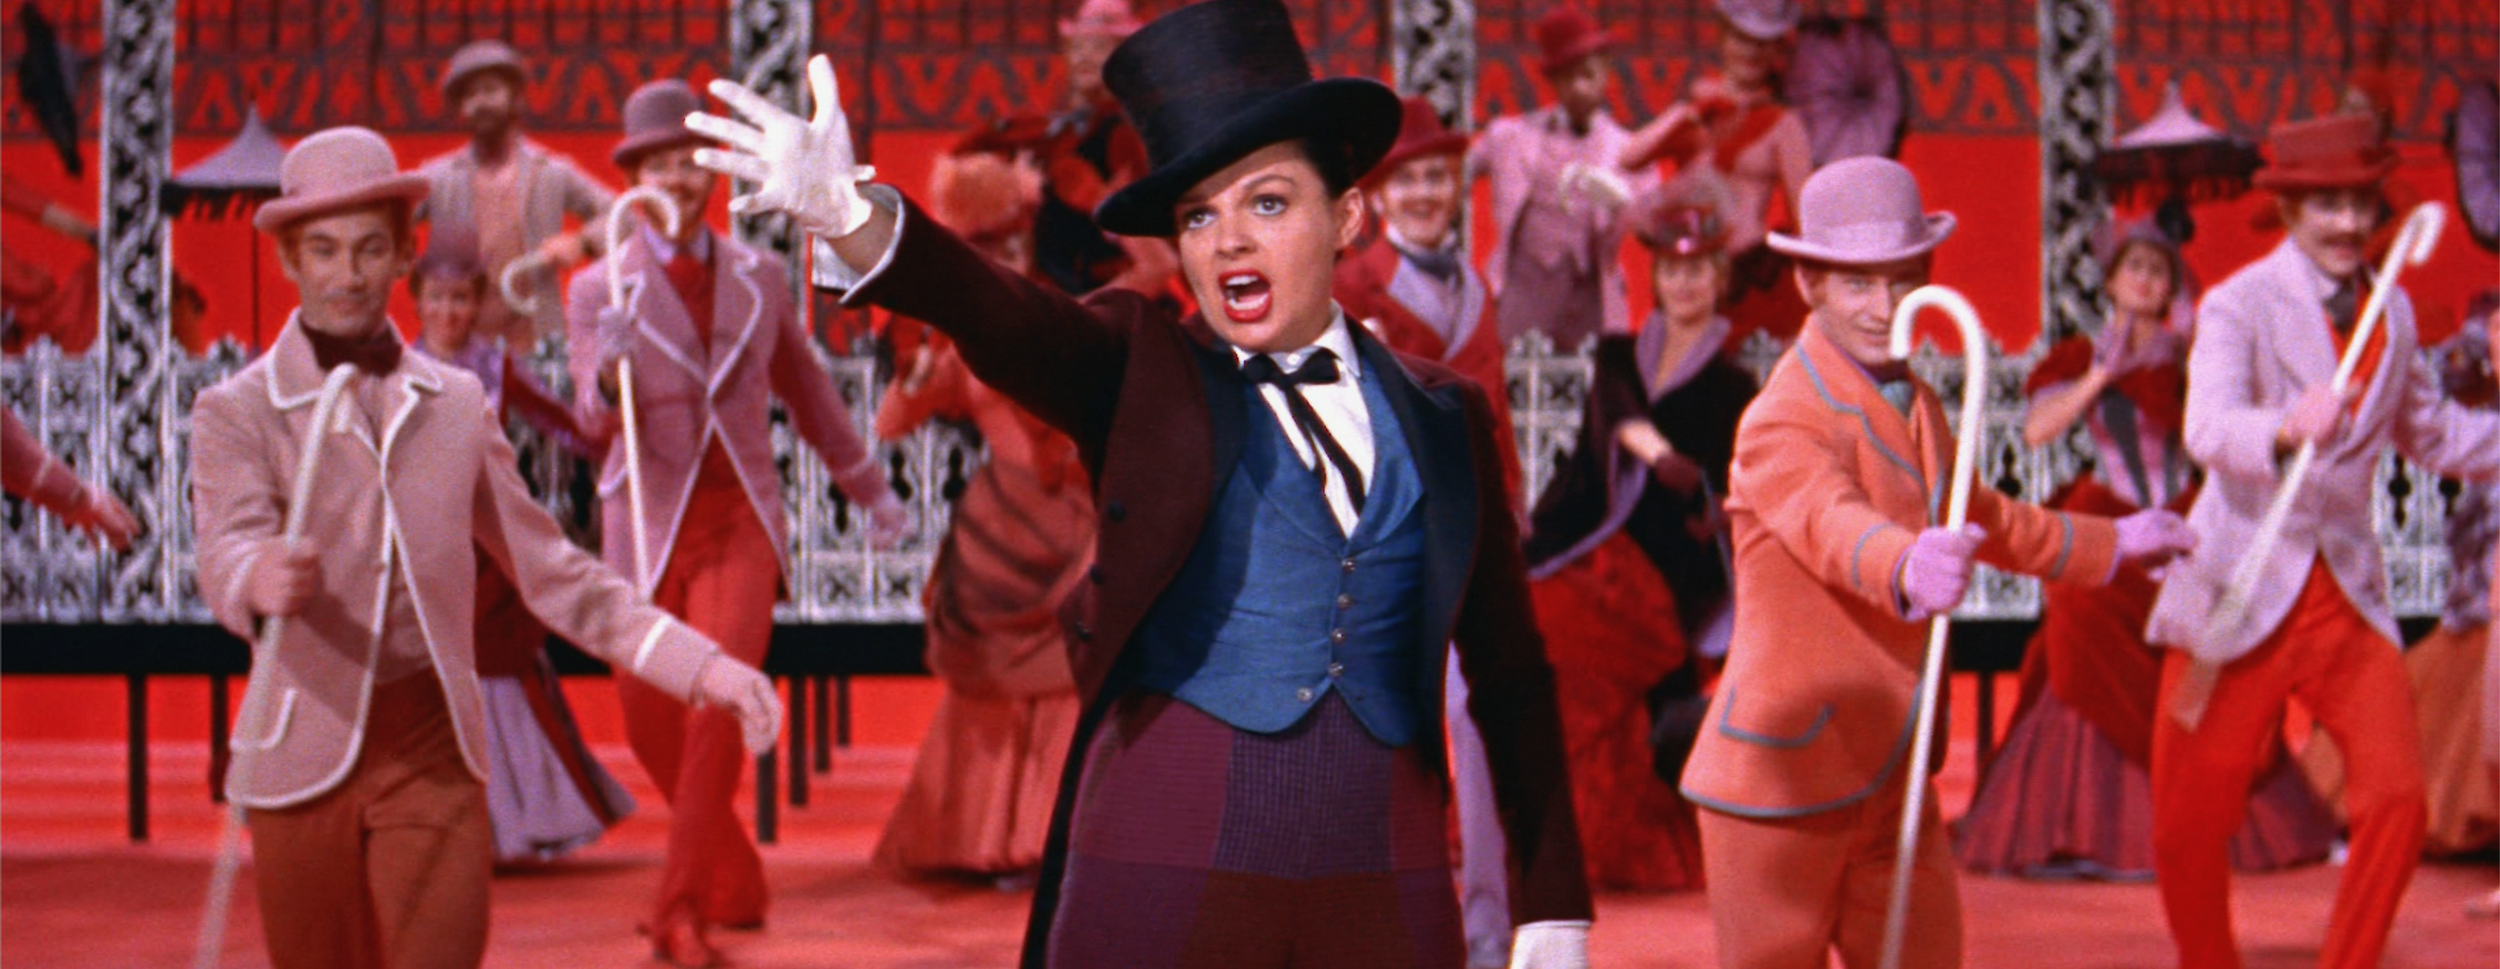 Review Judy Garland In A Star Is Born 1954 The Statuesque